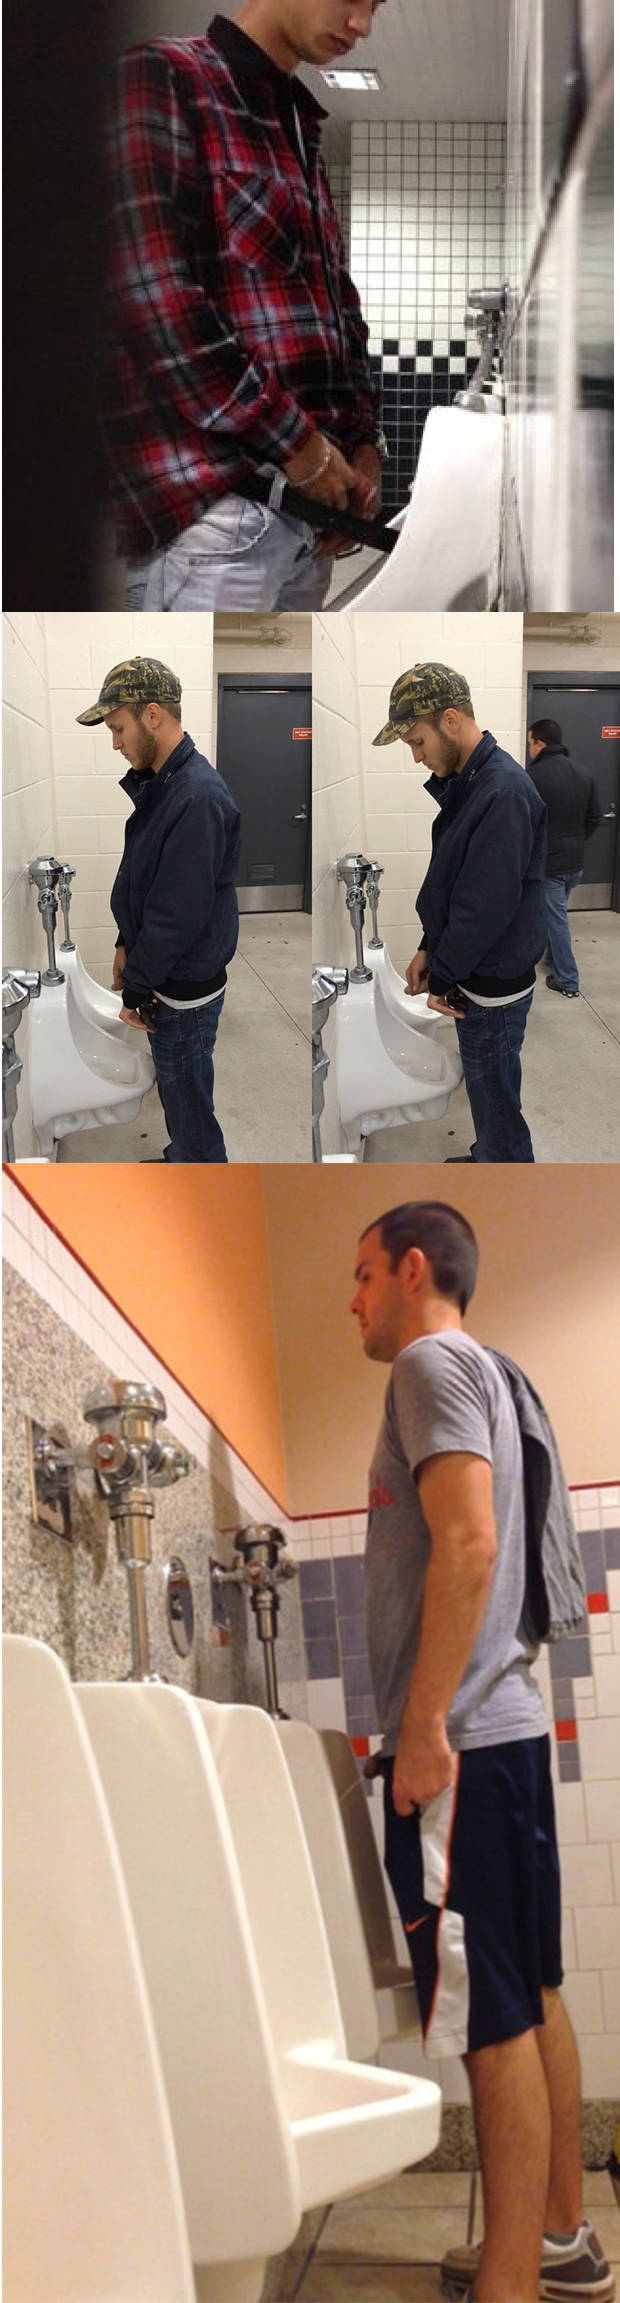 hidden cams urinals